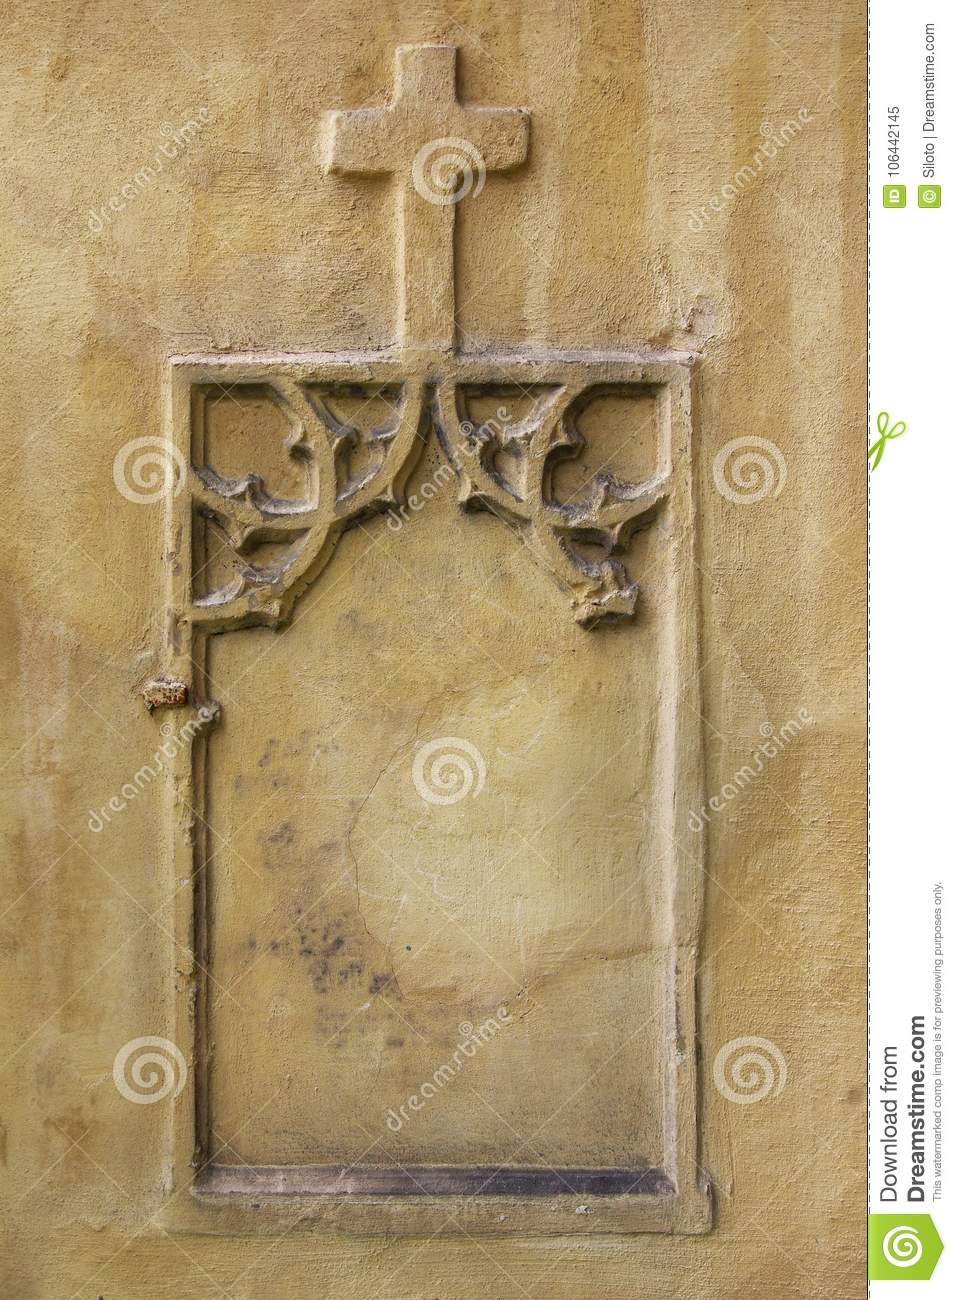 Niche In The Wall - Information Boards - Copy Space Stock Image ...